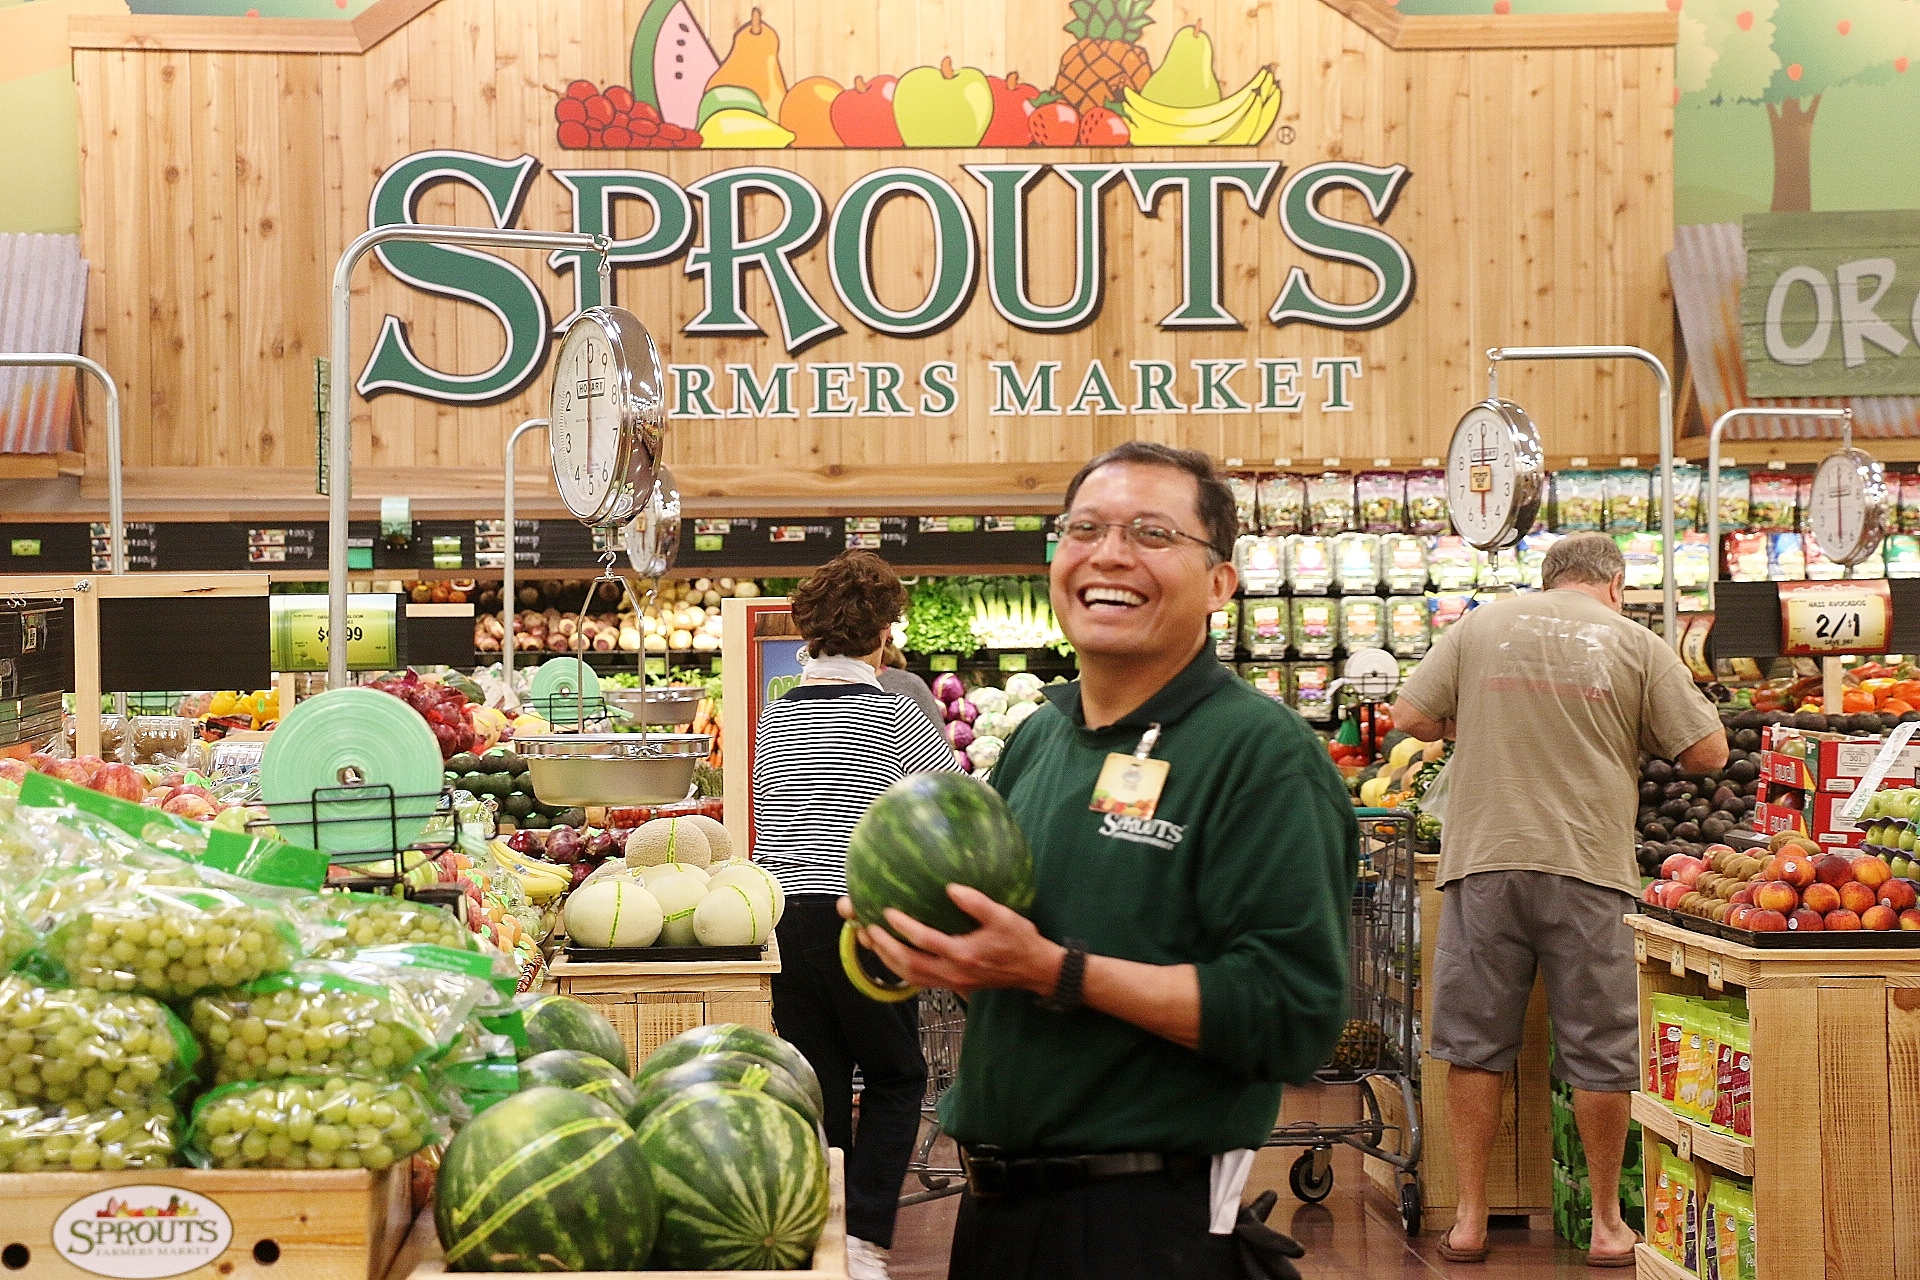 most of estrella plaza shopping center now open san clemente times at the wednesday grand opening of sprouts farmers market in the estrella plaza shopping center